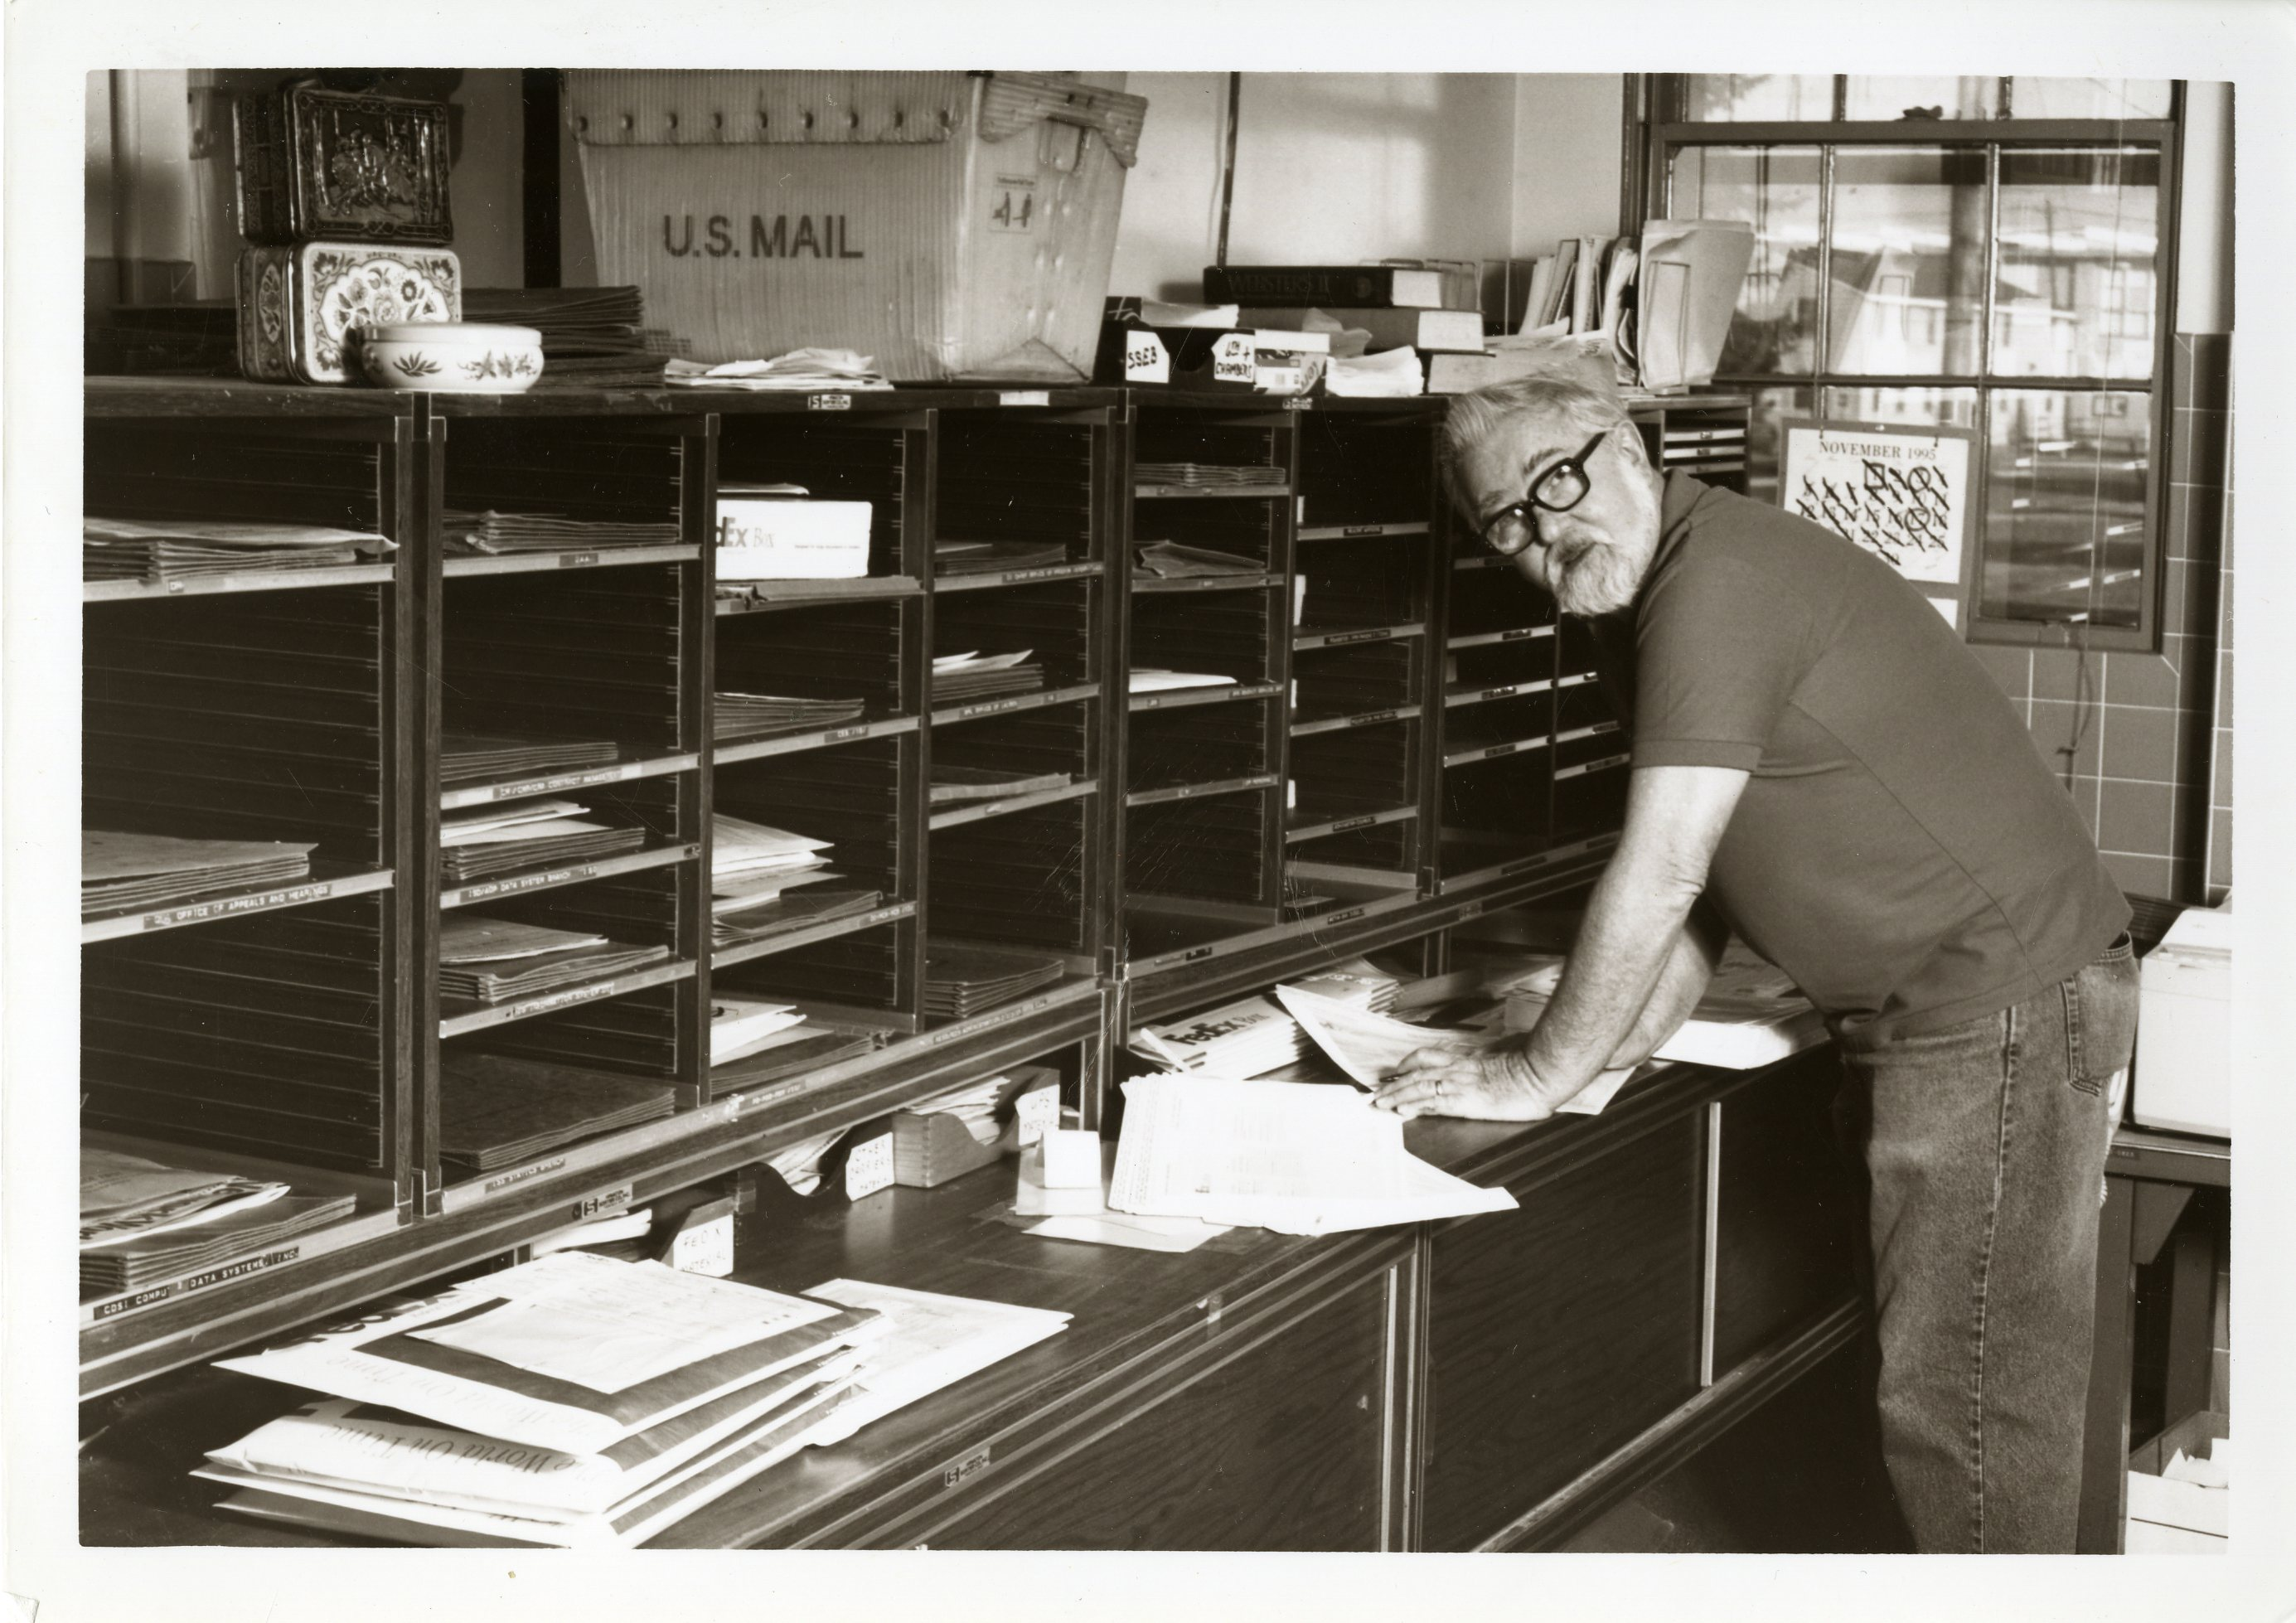 740 Mail Room, Distro Mail